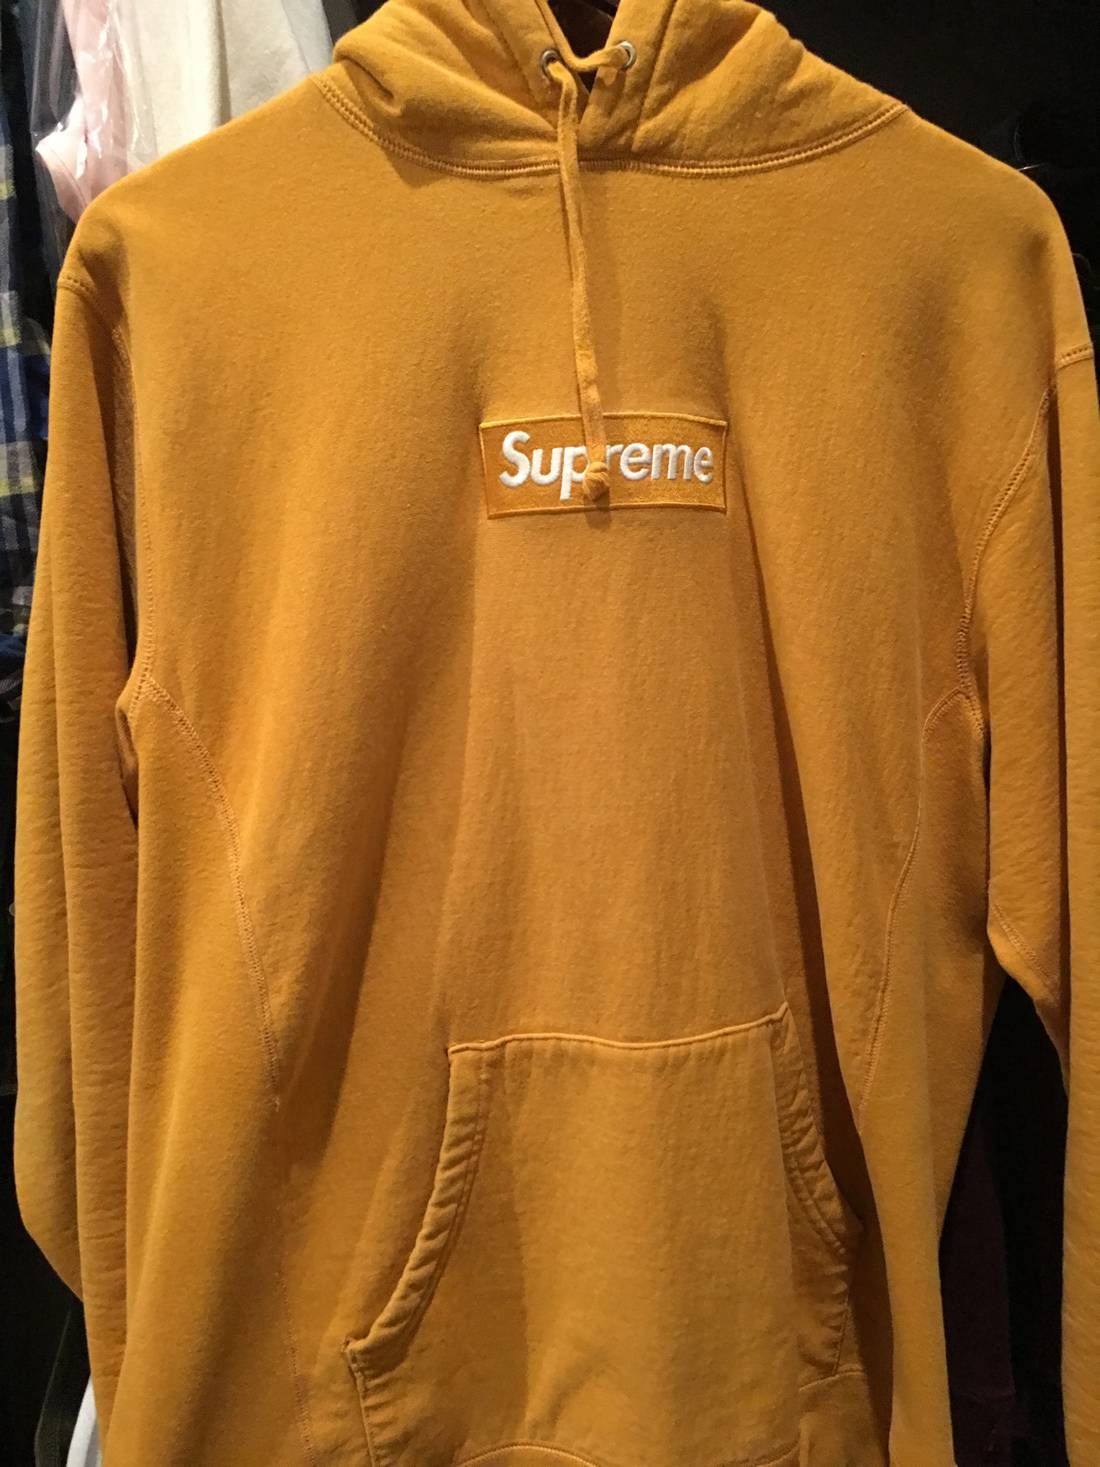 de3f548f2c81 Supreme Box Logo Hoodie (Yellow) Size US XL EU 56 4 .